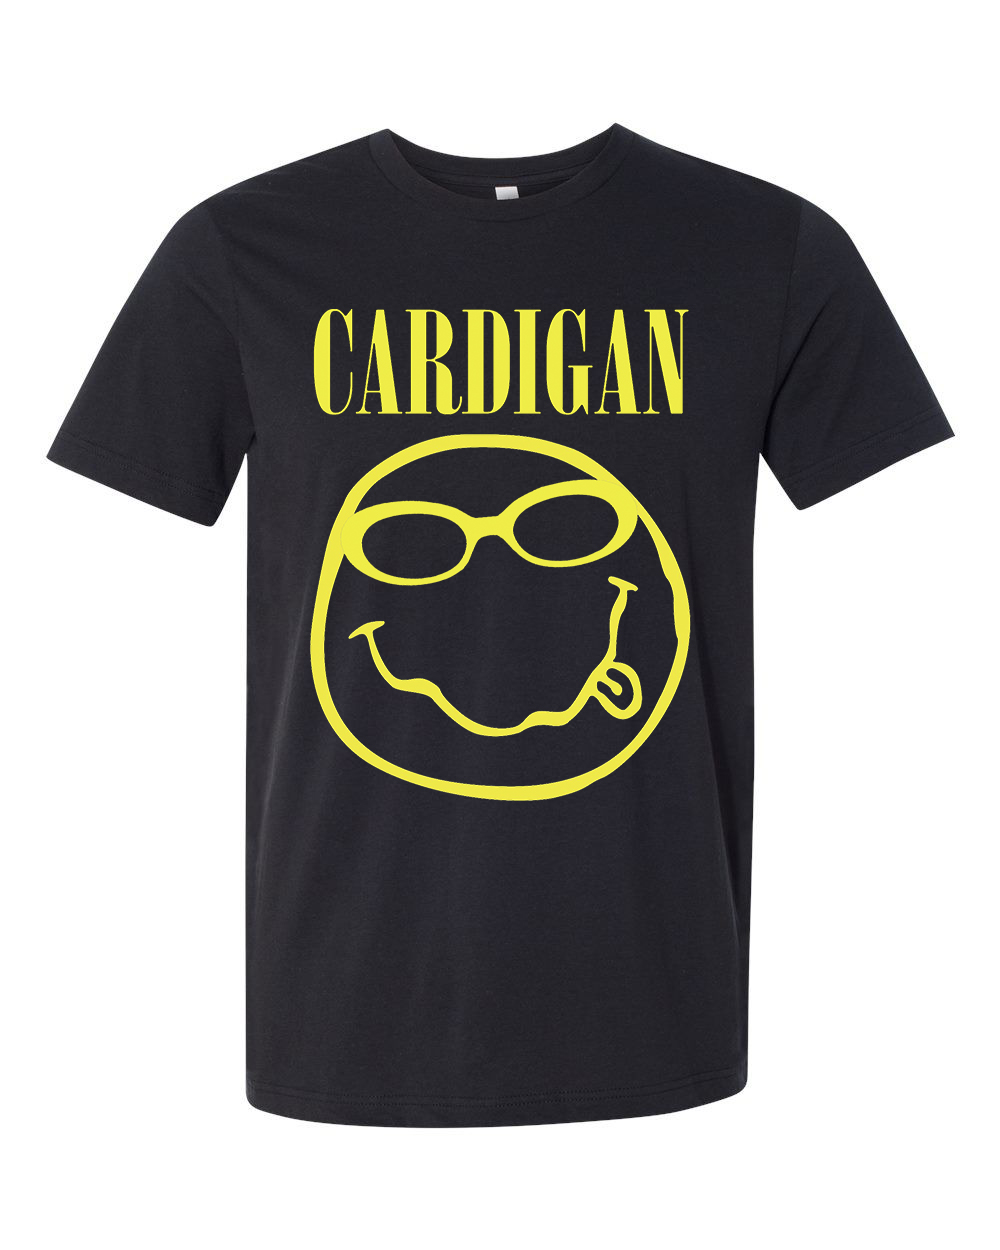 Cardigan Records - Vintage